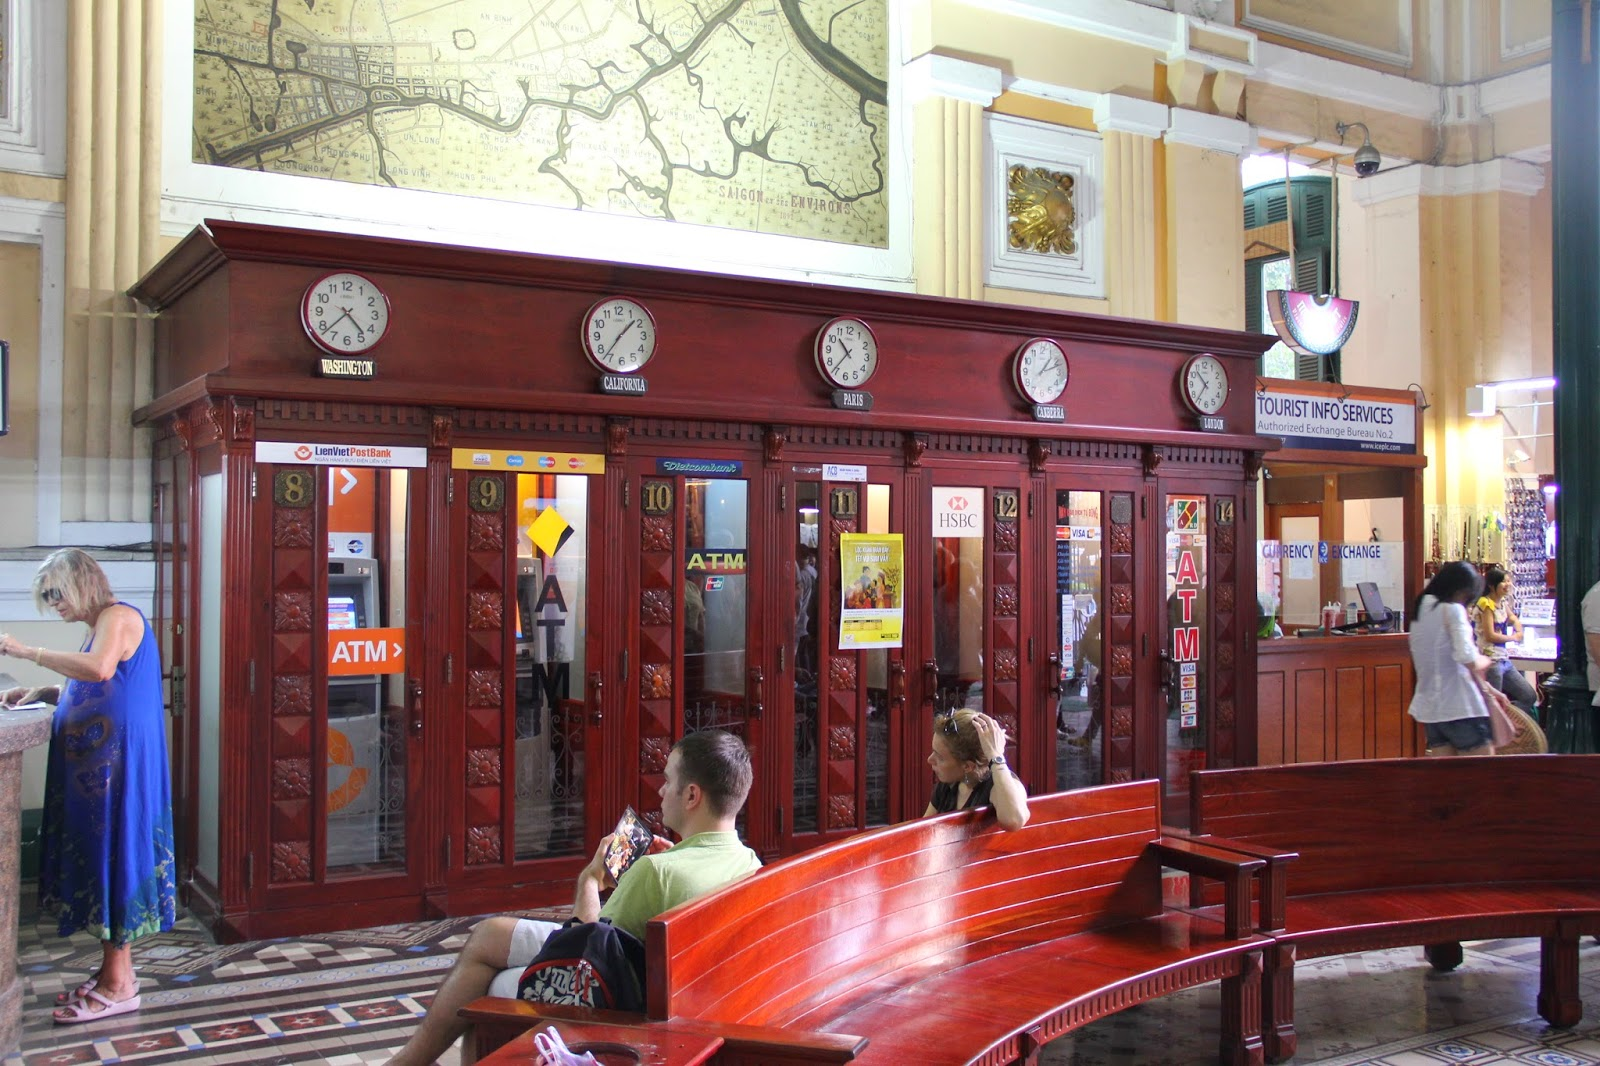 The old telephone booths at the General Post Office now house ATMs!